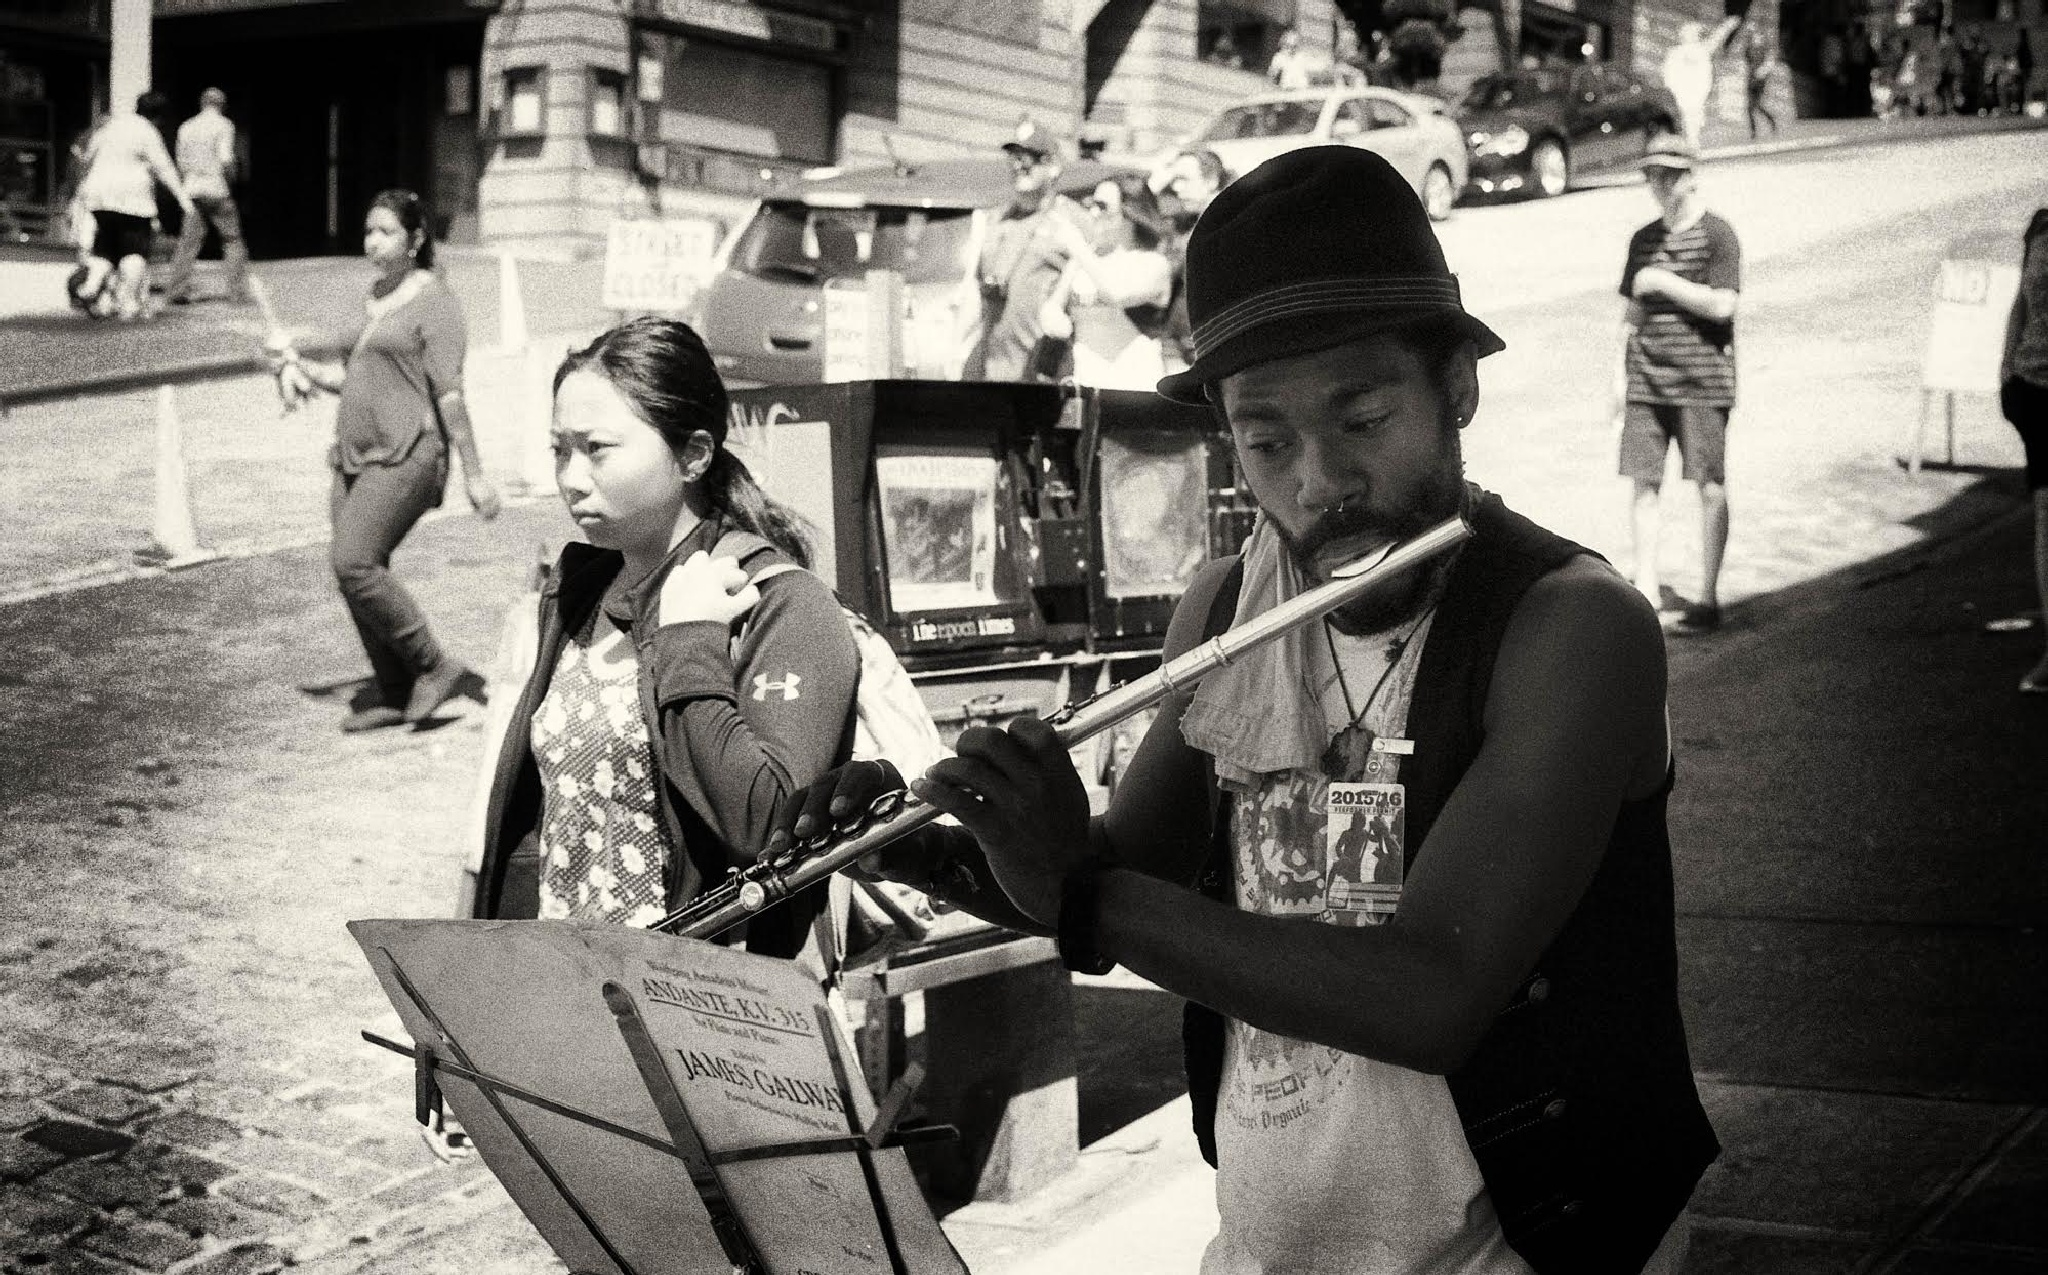 Music on the Streets by Bernhard Uhl